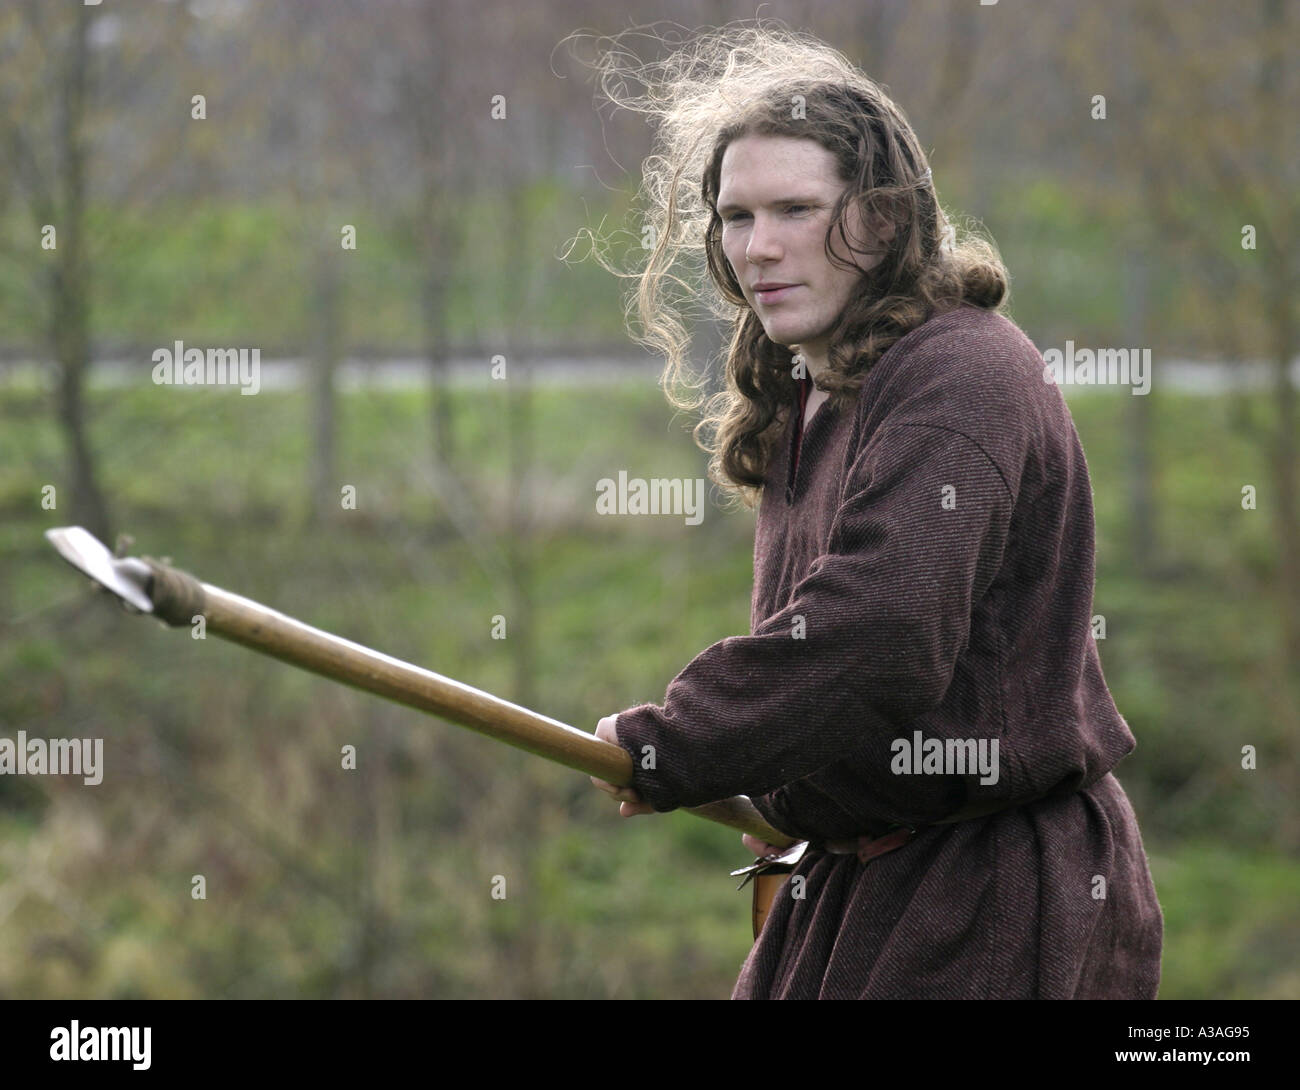 iron age reinactor role player in costume with long spear pointing ecos centre ballymena st Patrick s day county antrim - Stock Image